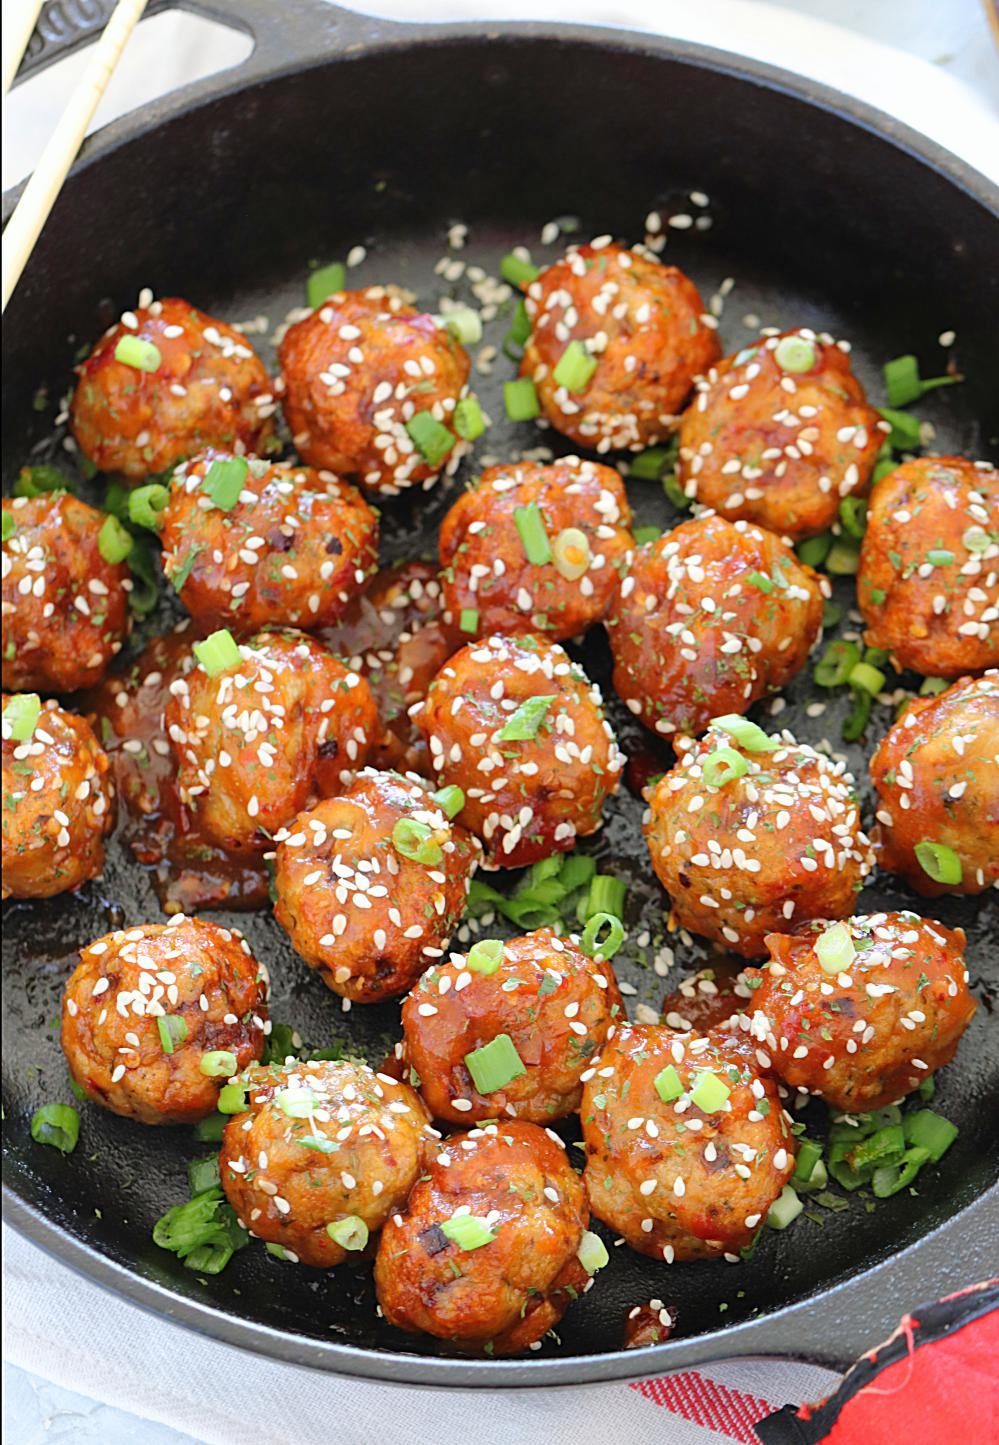 Baked Teriyaki Chicken Meatballs - Ruchiskitchen